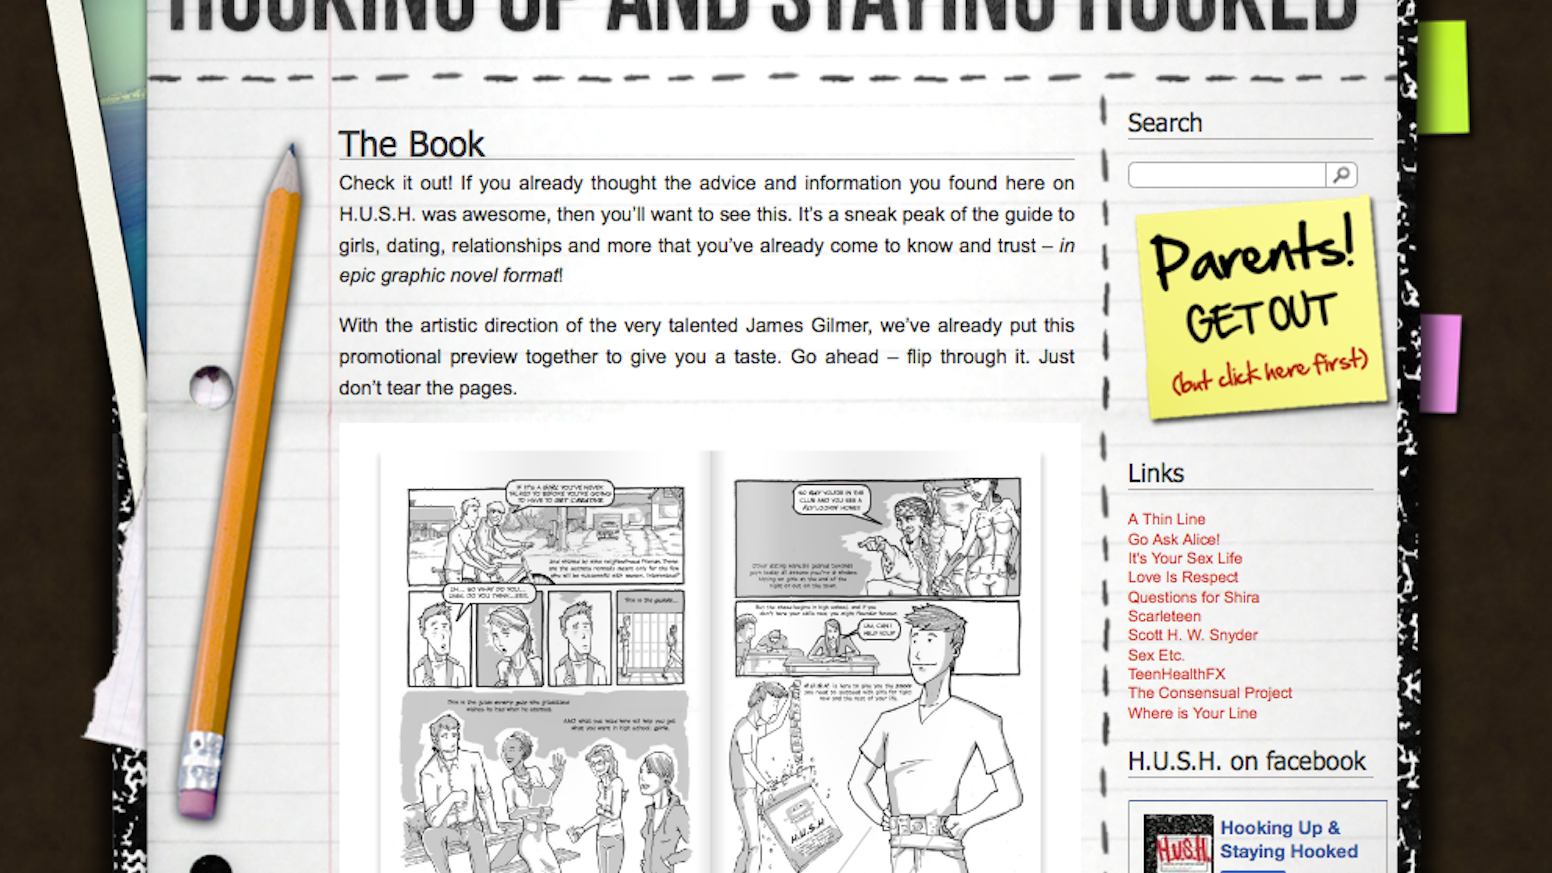 Hooking Up & Staying Hooked: The Comic Book by Colin Adamo